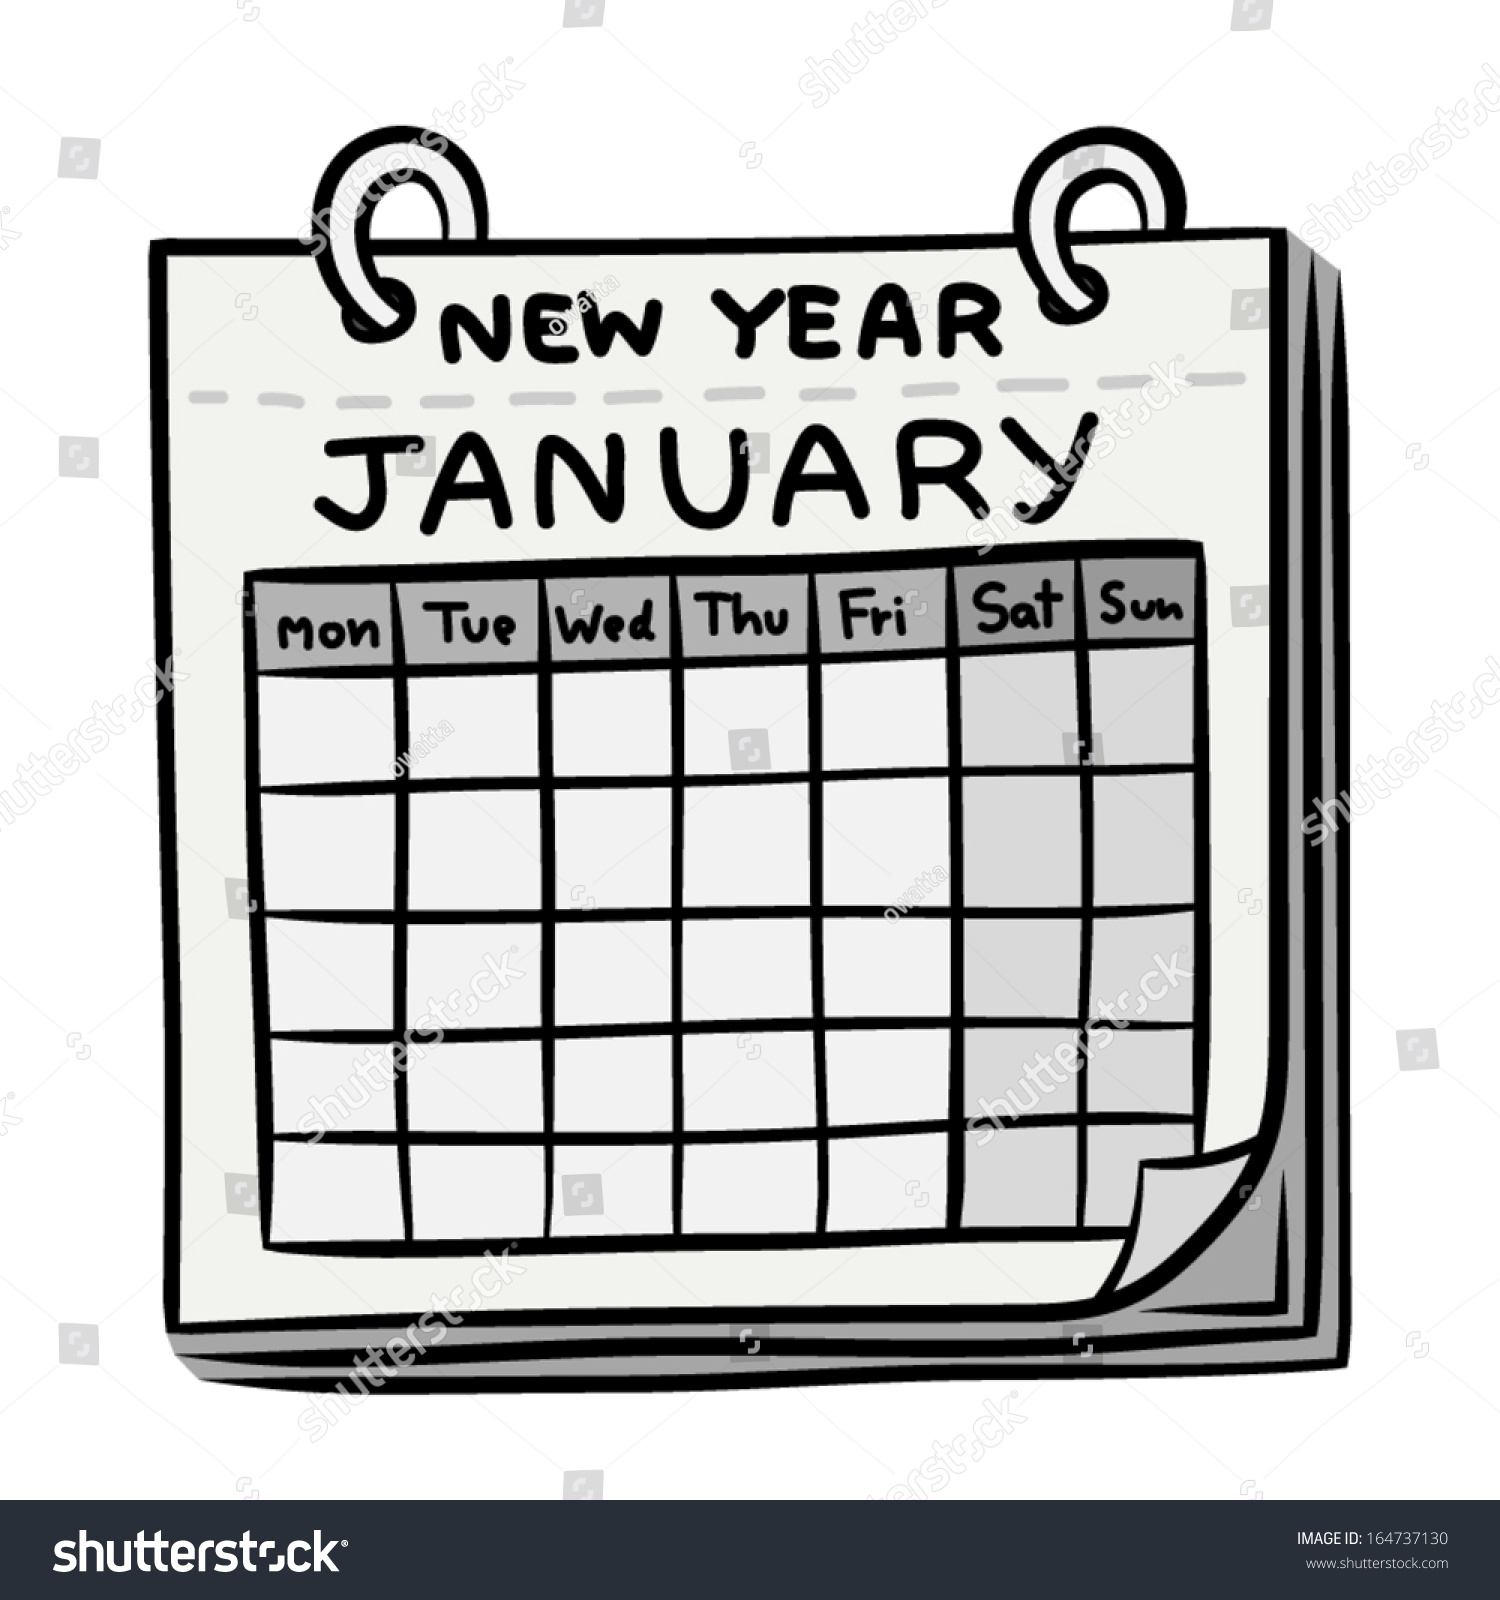 Image result for cartoon calendar